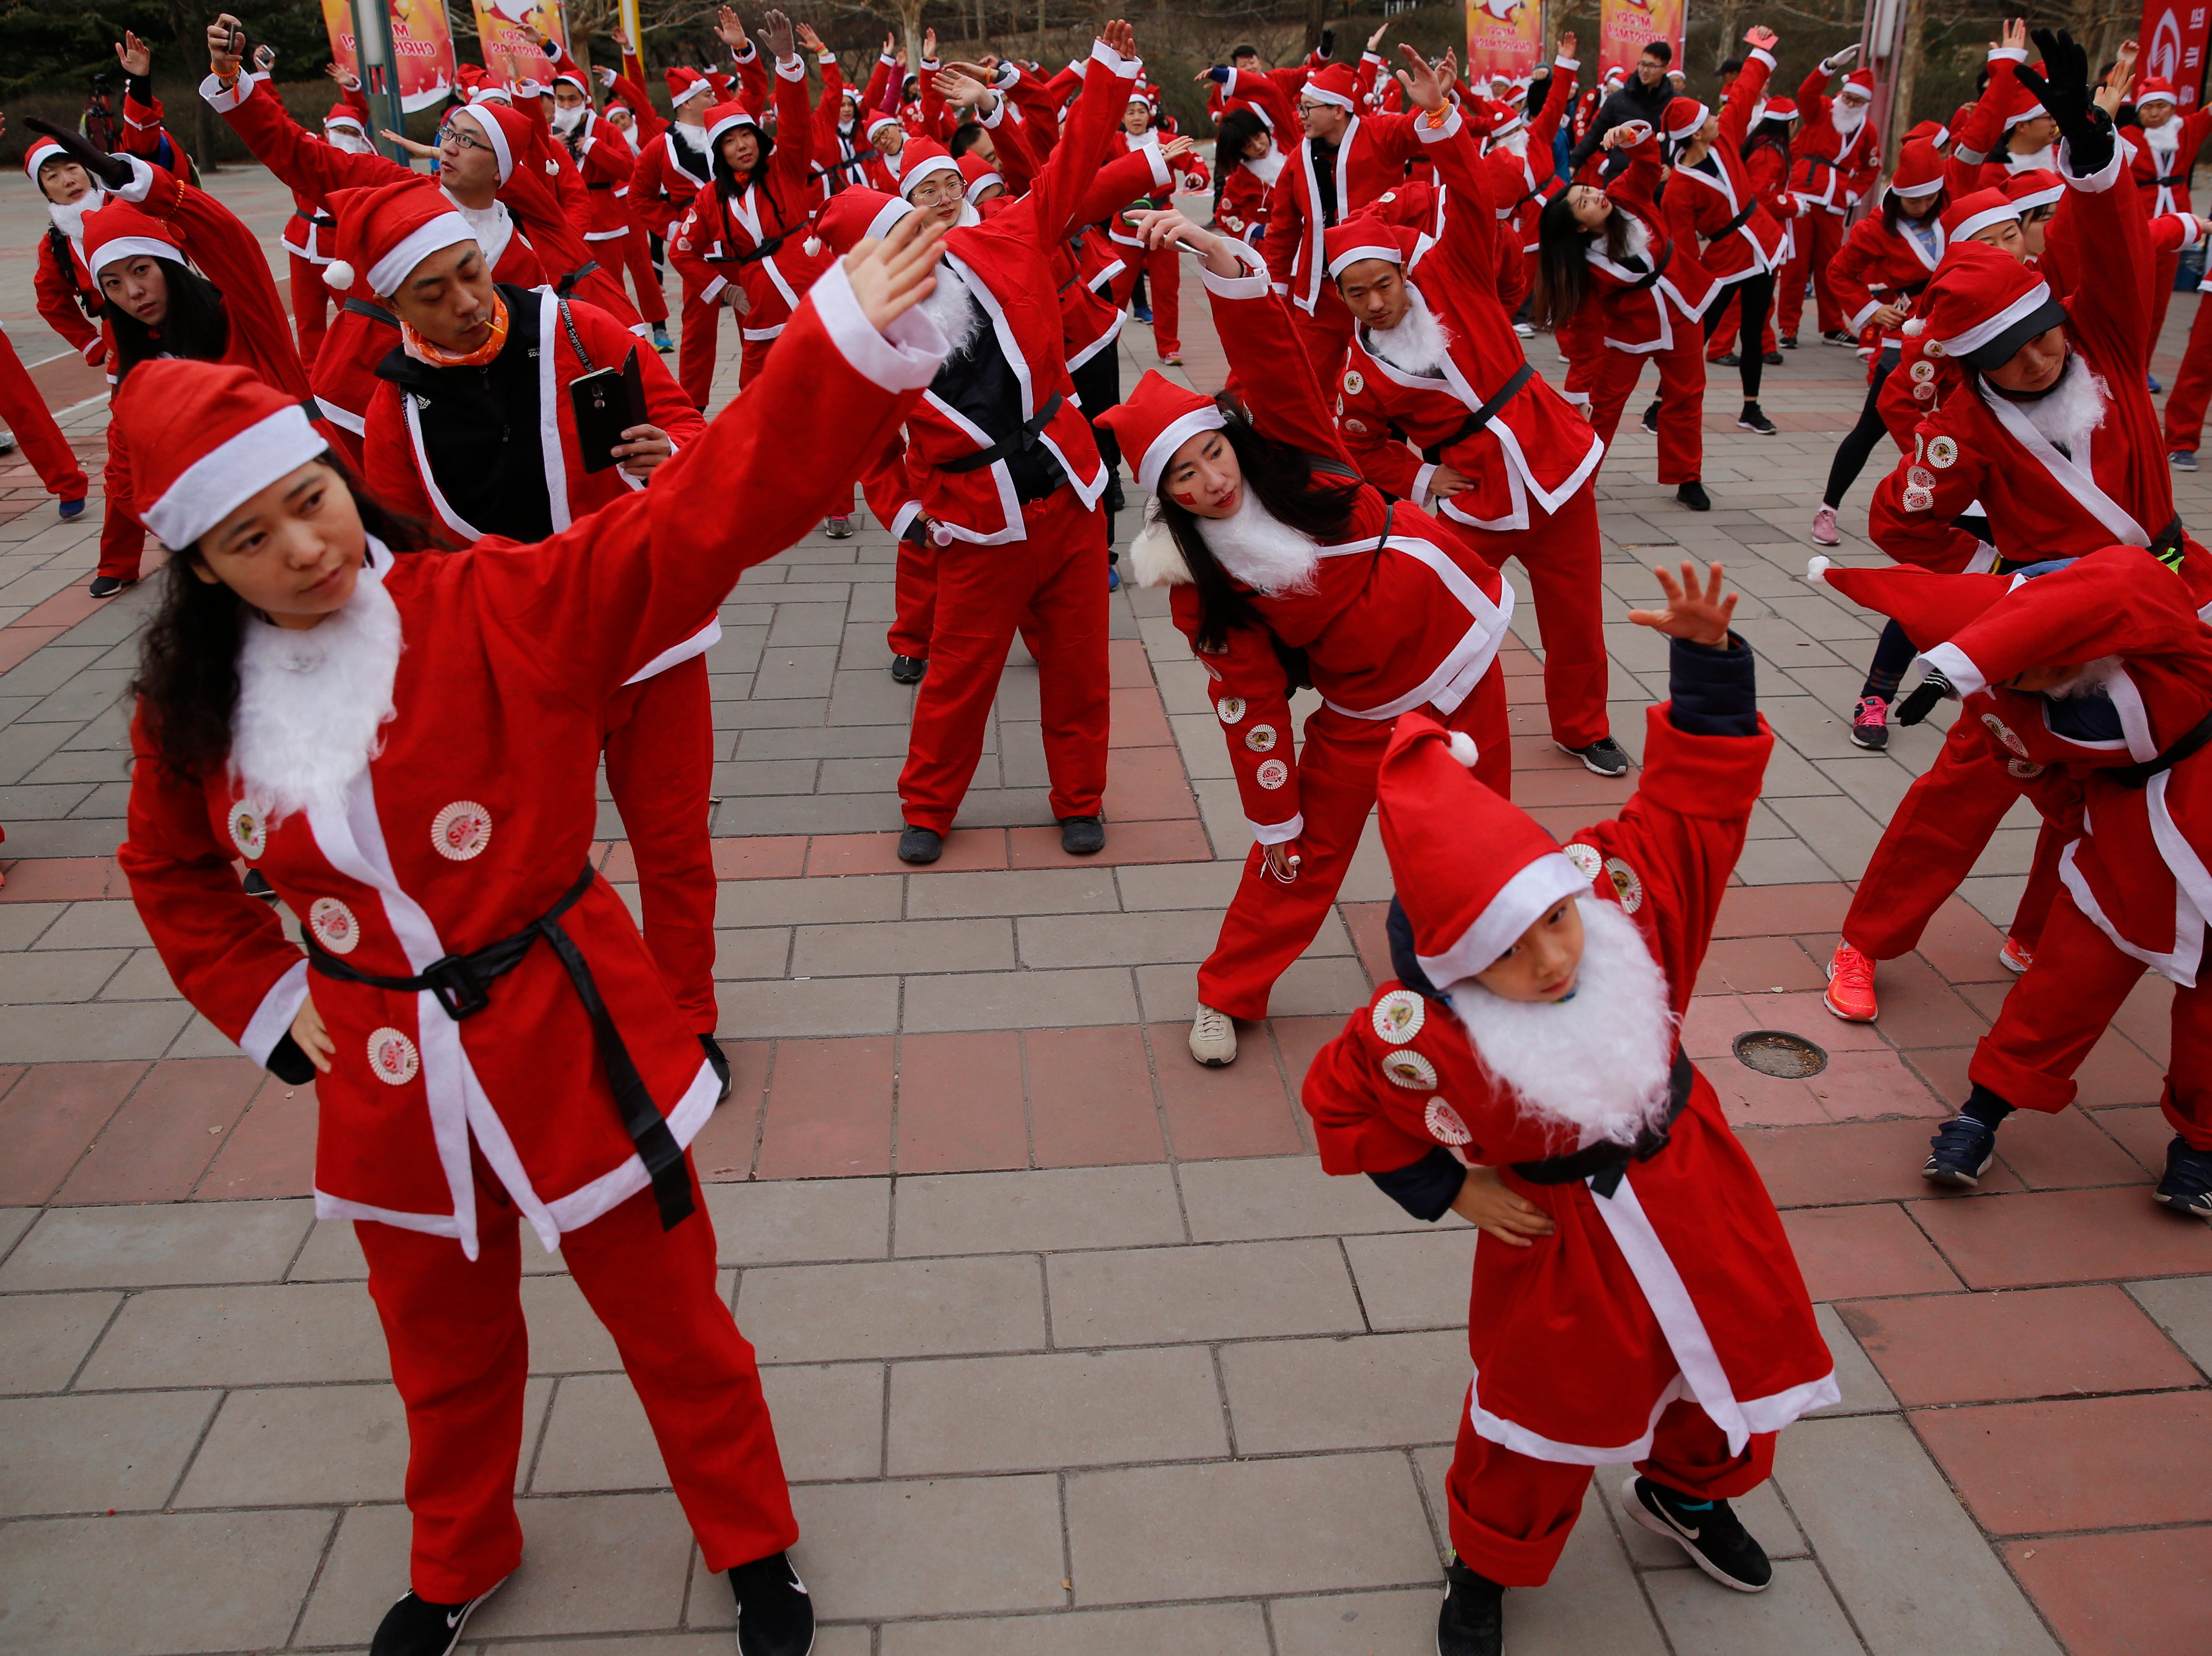 Chinese participants dressed in Santa Claus costumes warm up prior to the start of a Santa Claus fun run event to celebrate the upcoming Christmas Day at Chaoyang park in Beijing, China on Dec. 22, 2018.